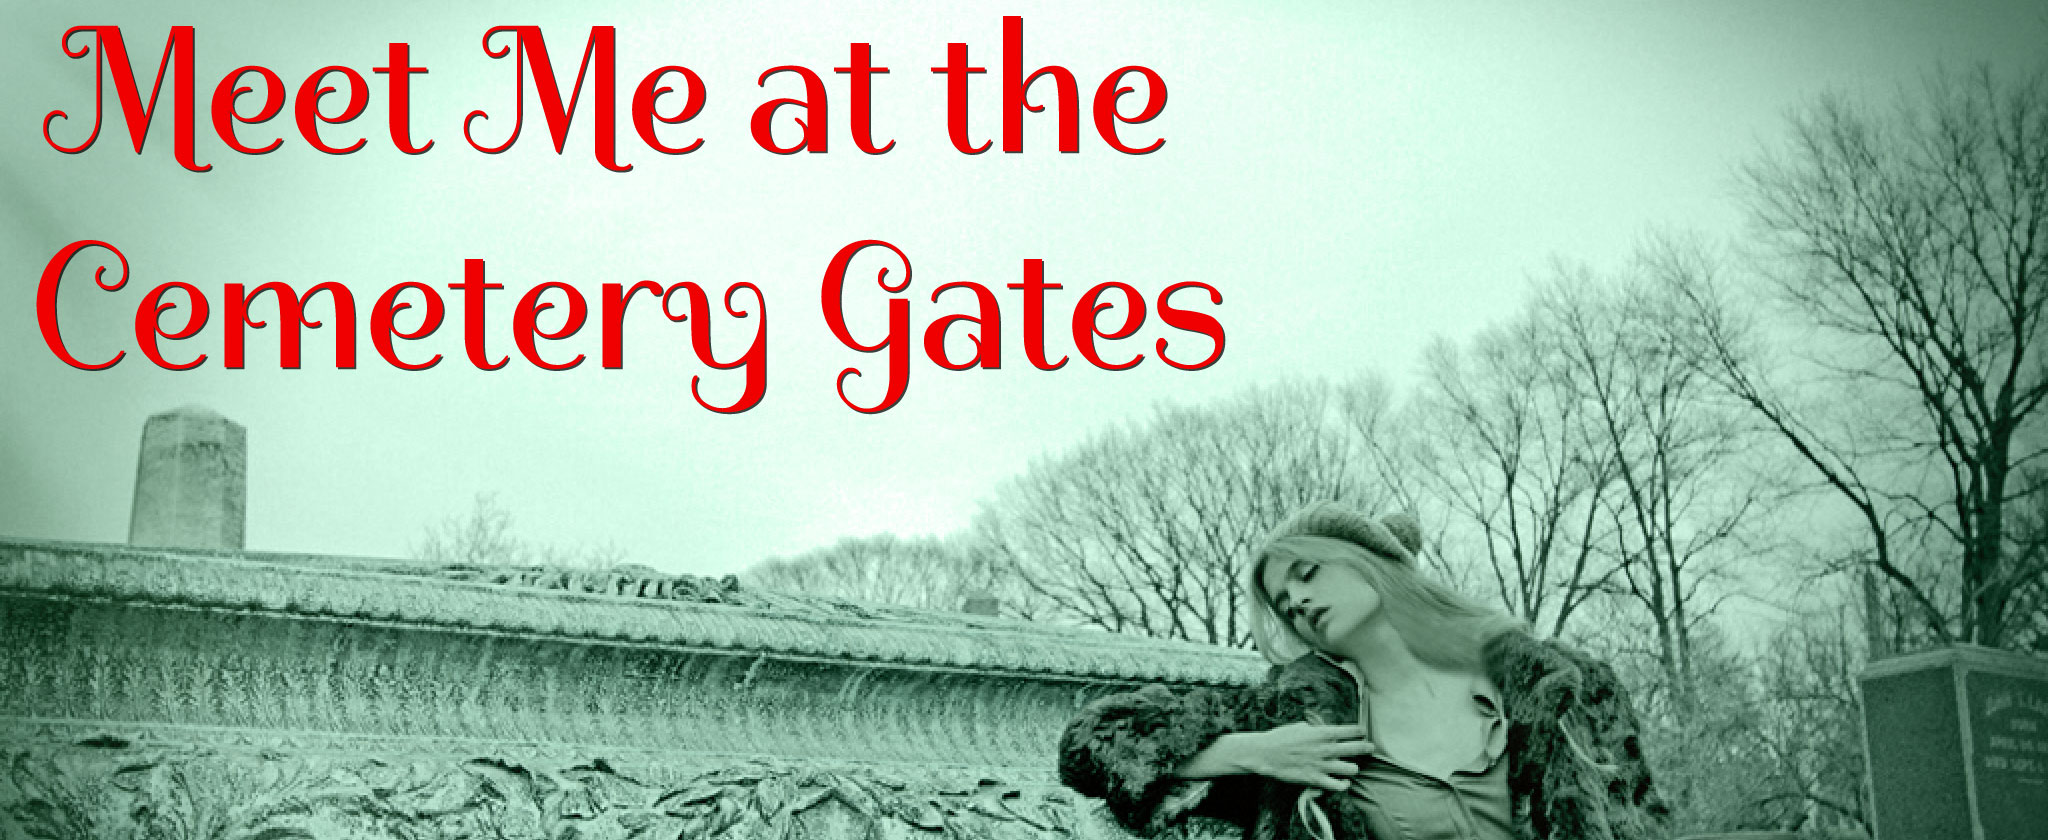 Meet-Me-at-the-Cemetery-Gates